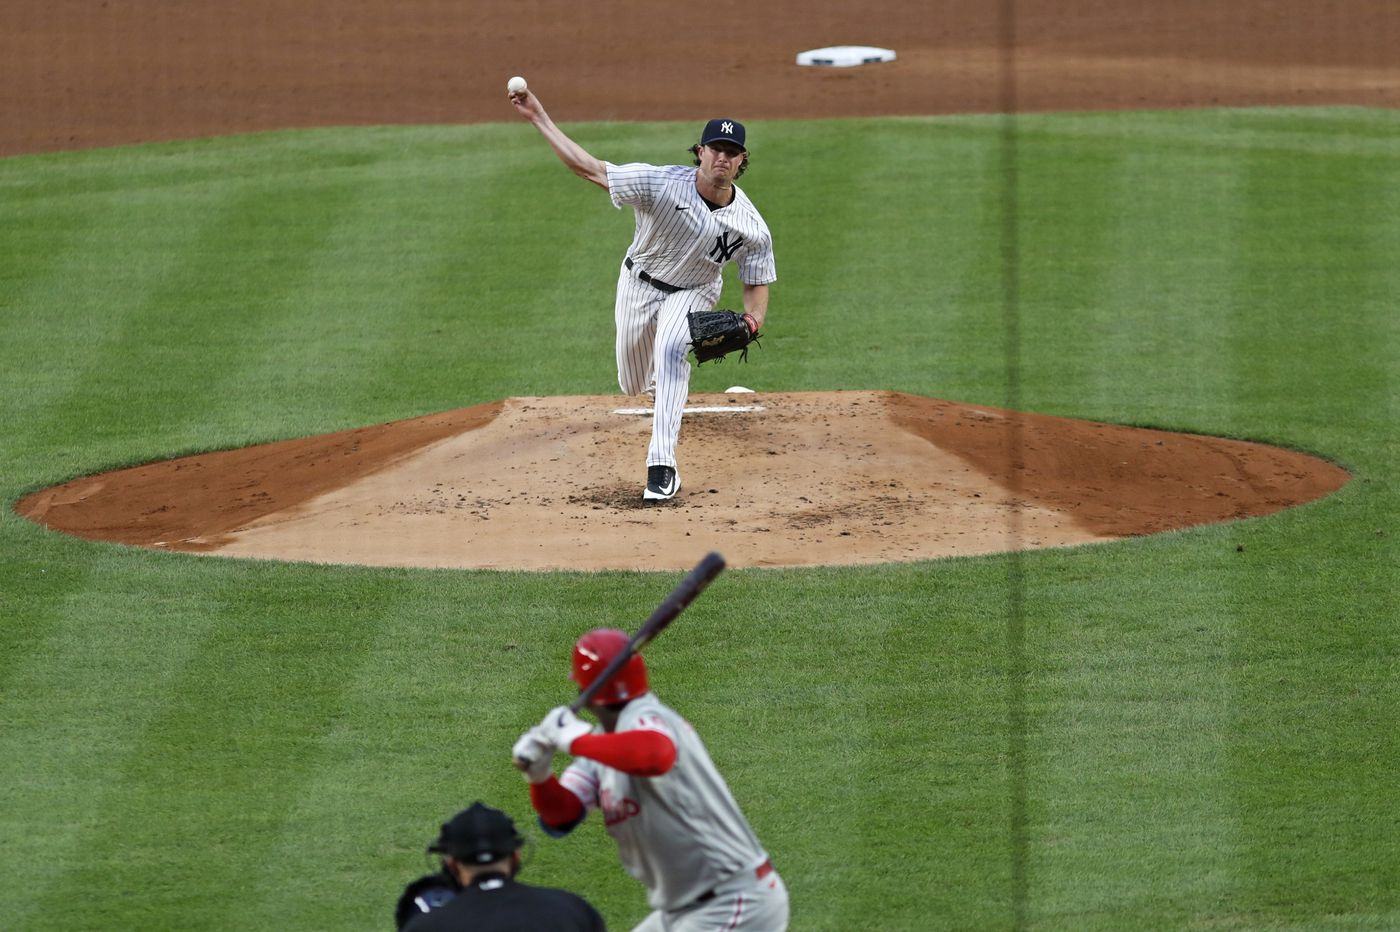 Phillies play first game in seven days, but Yankees extend winning streak to seven games